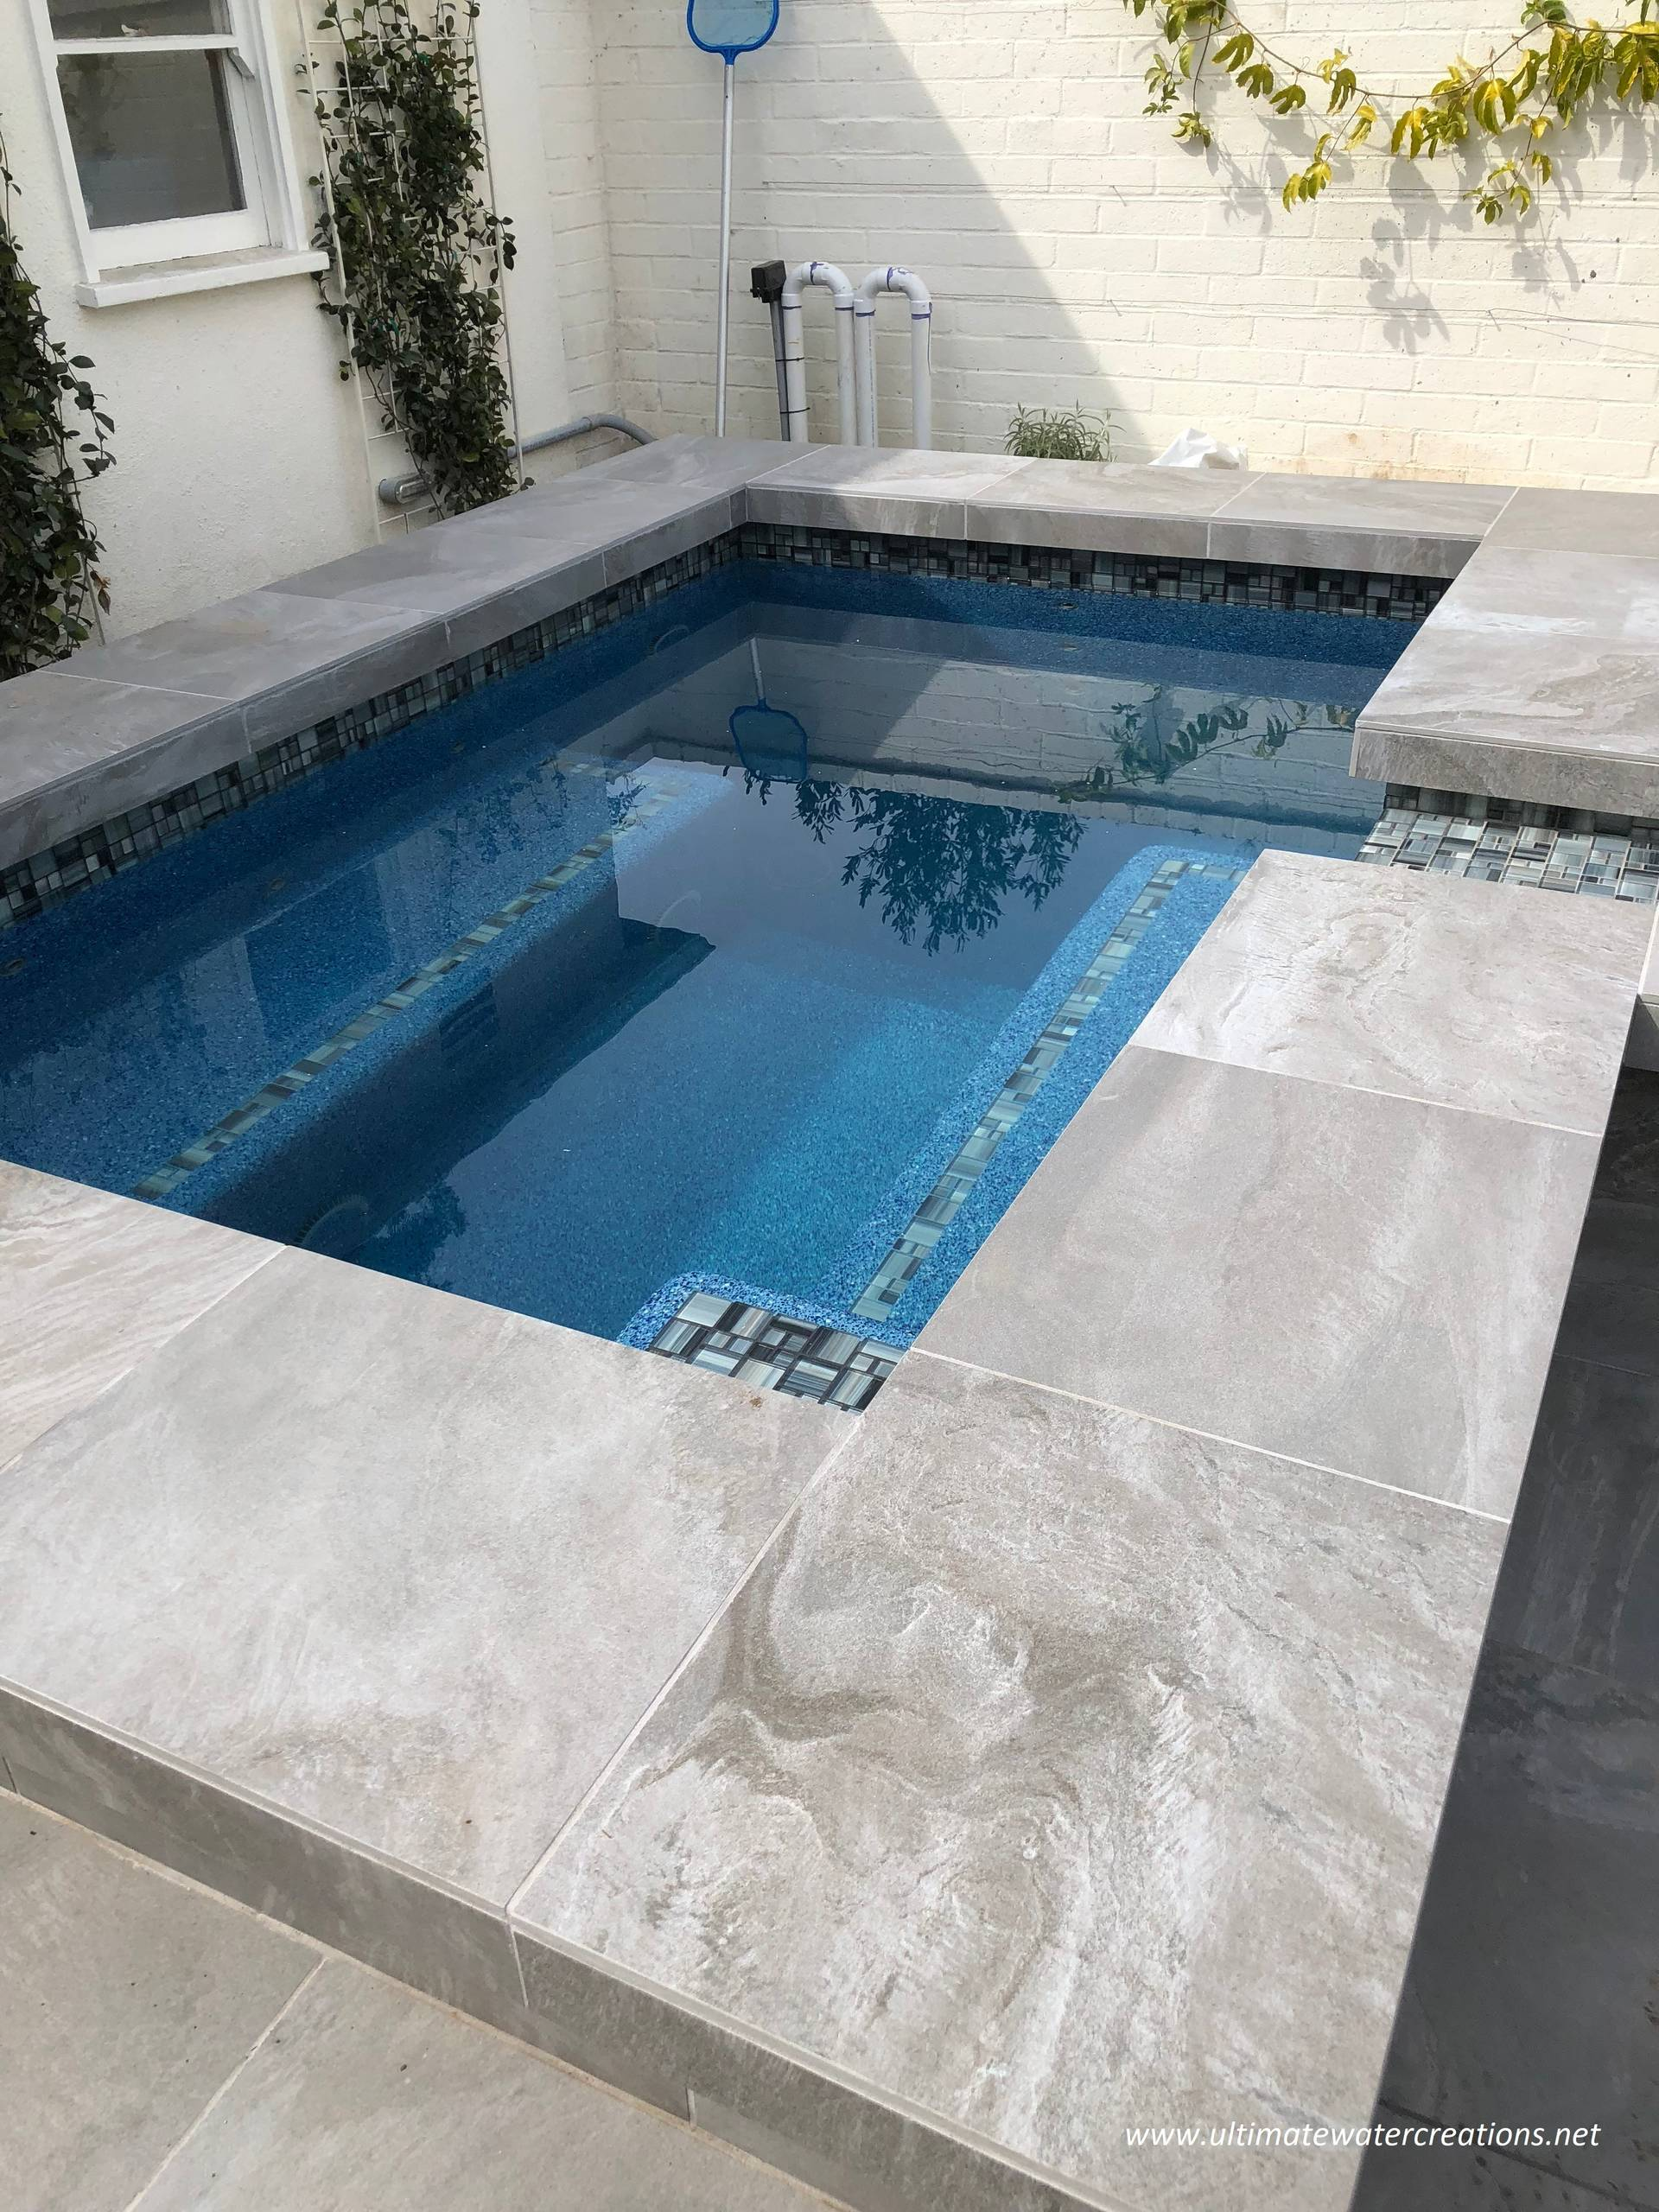 West Los Angeles - Contemporary Pool Remodel & New Spa